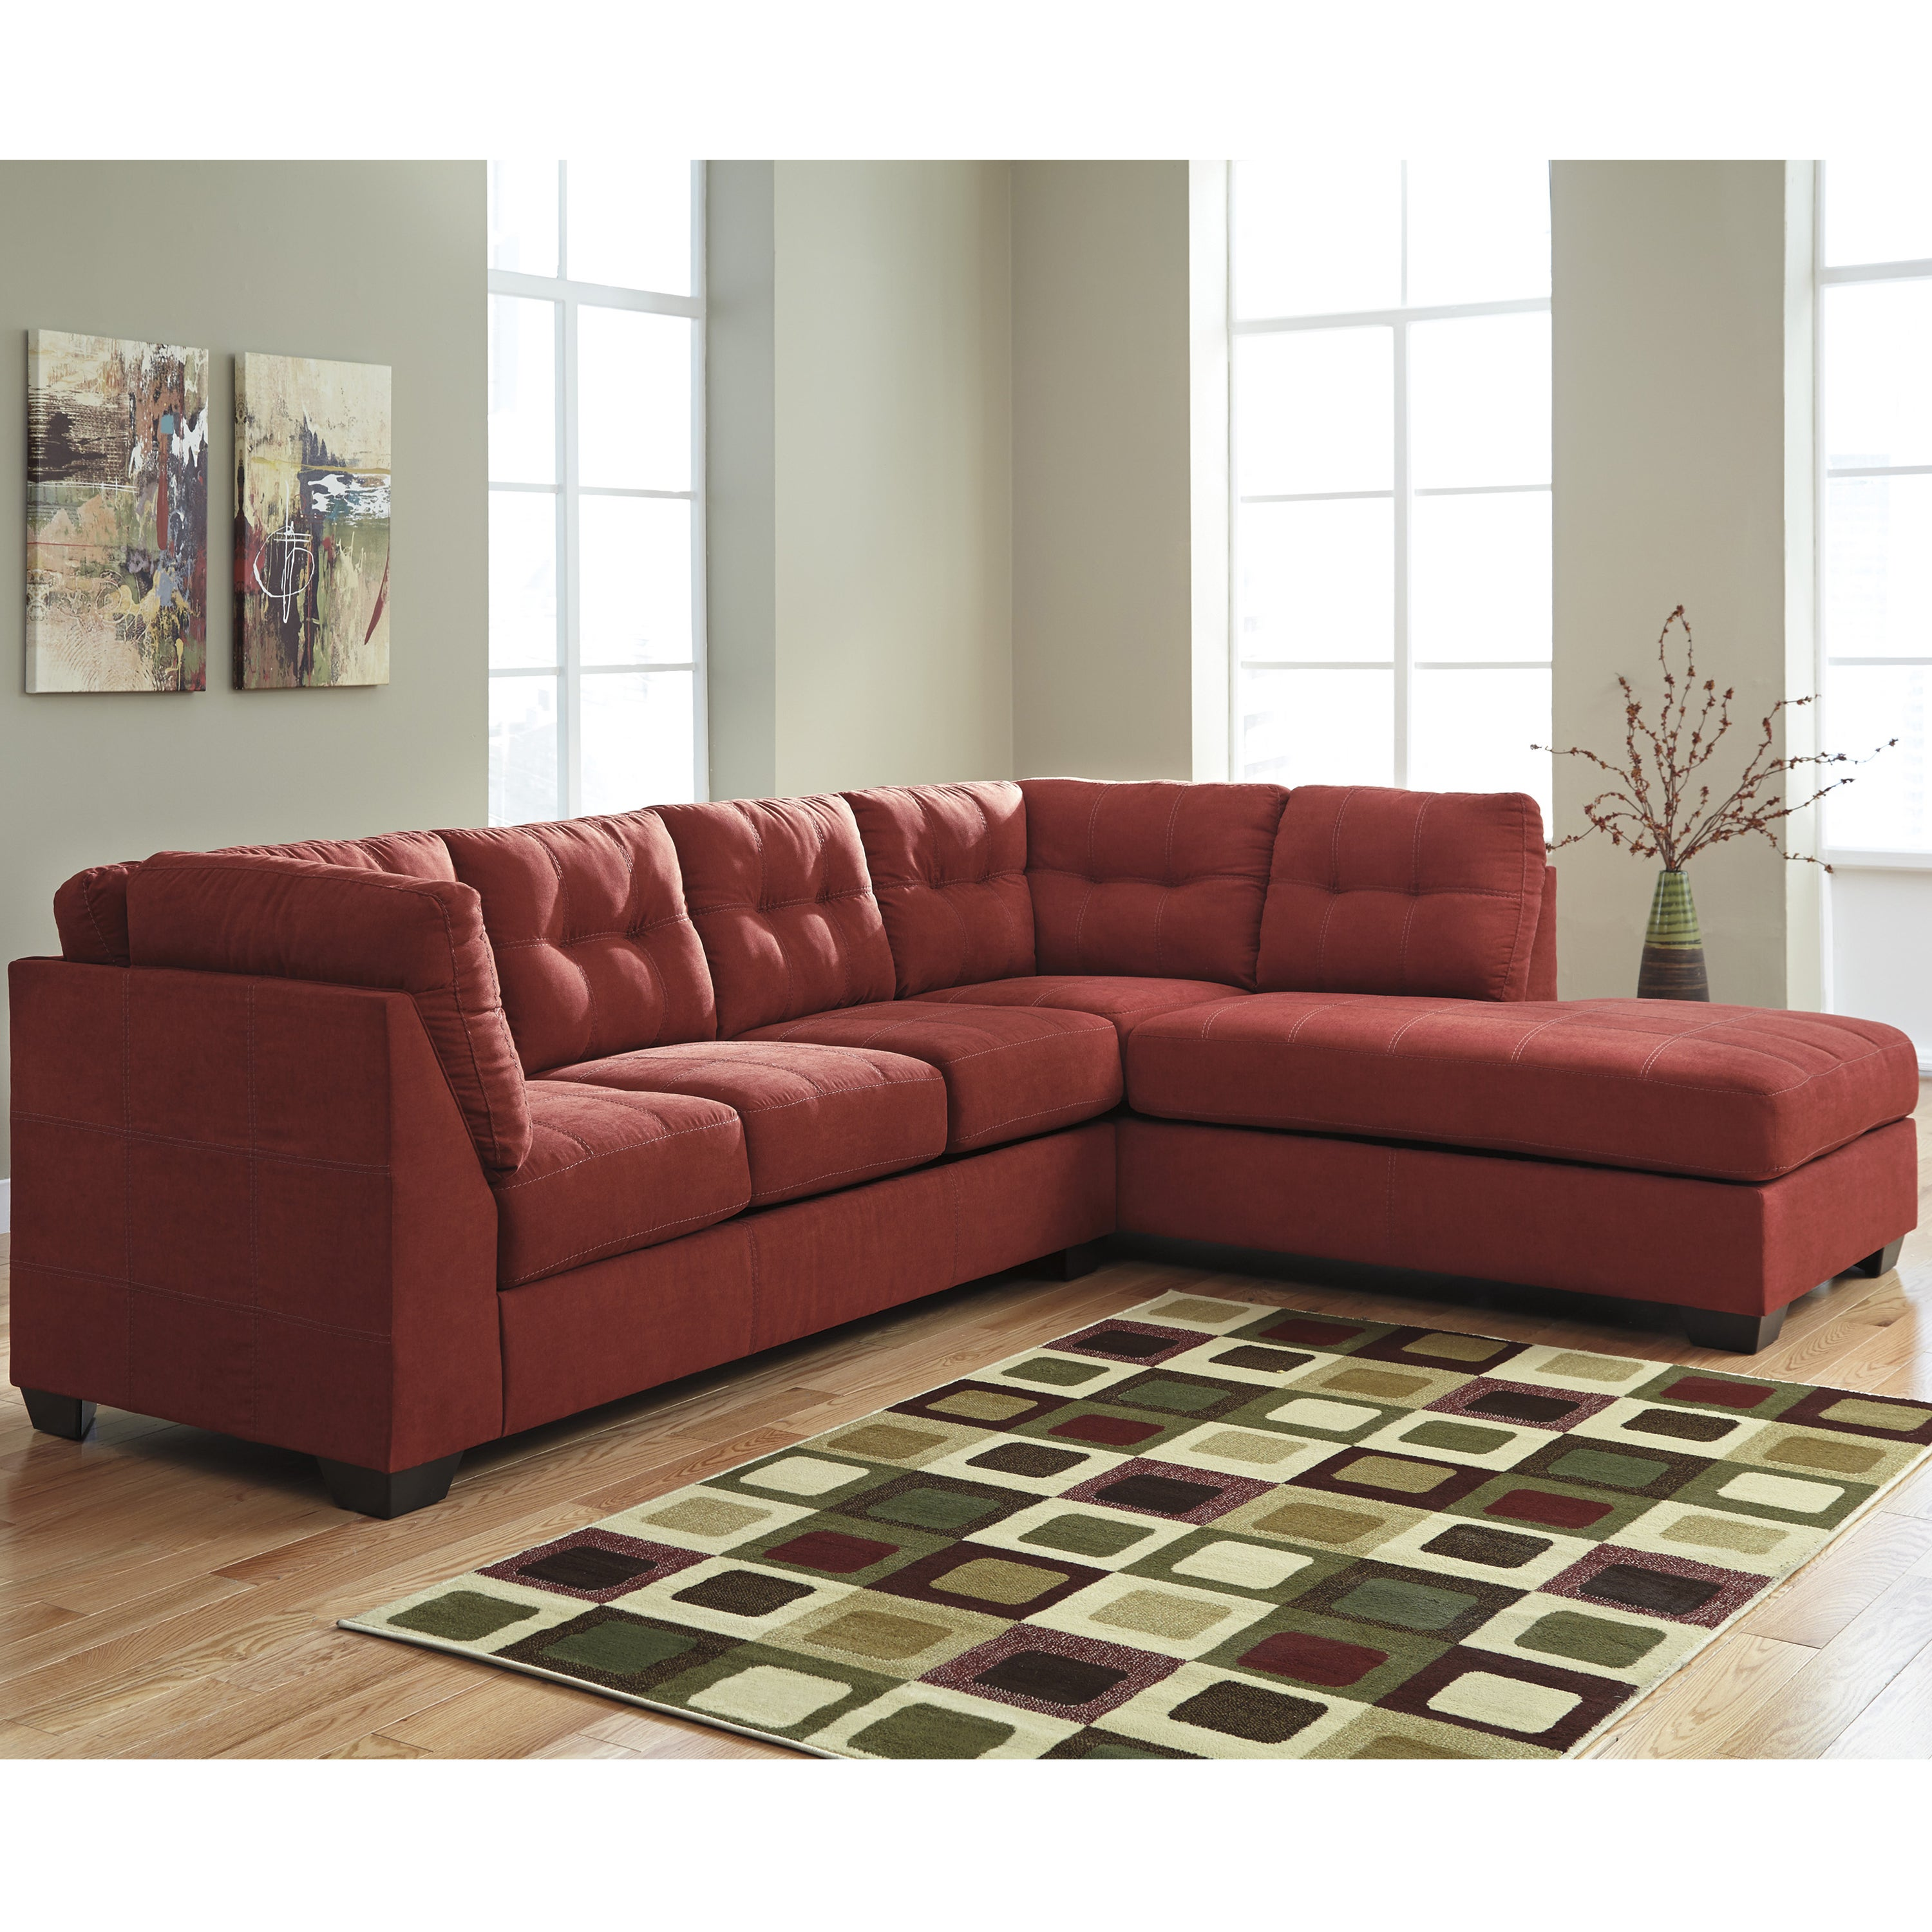 Benchcraft Maier Microfiber Sectional Sofa With Right Side Facing Chaise  (Option: Red)